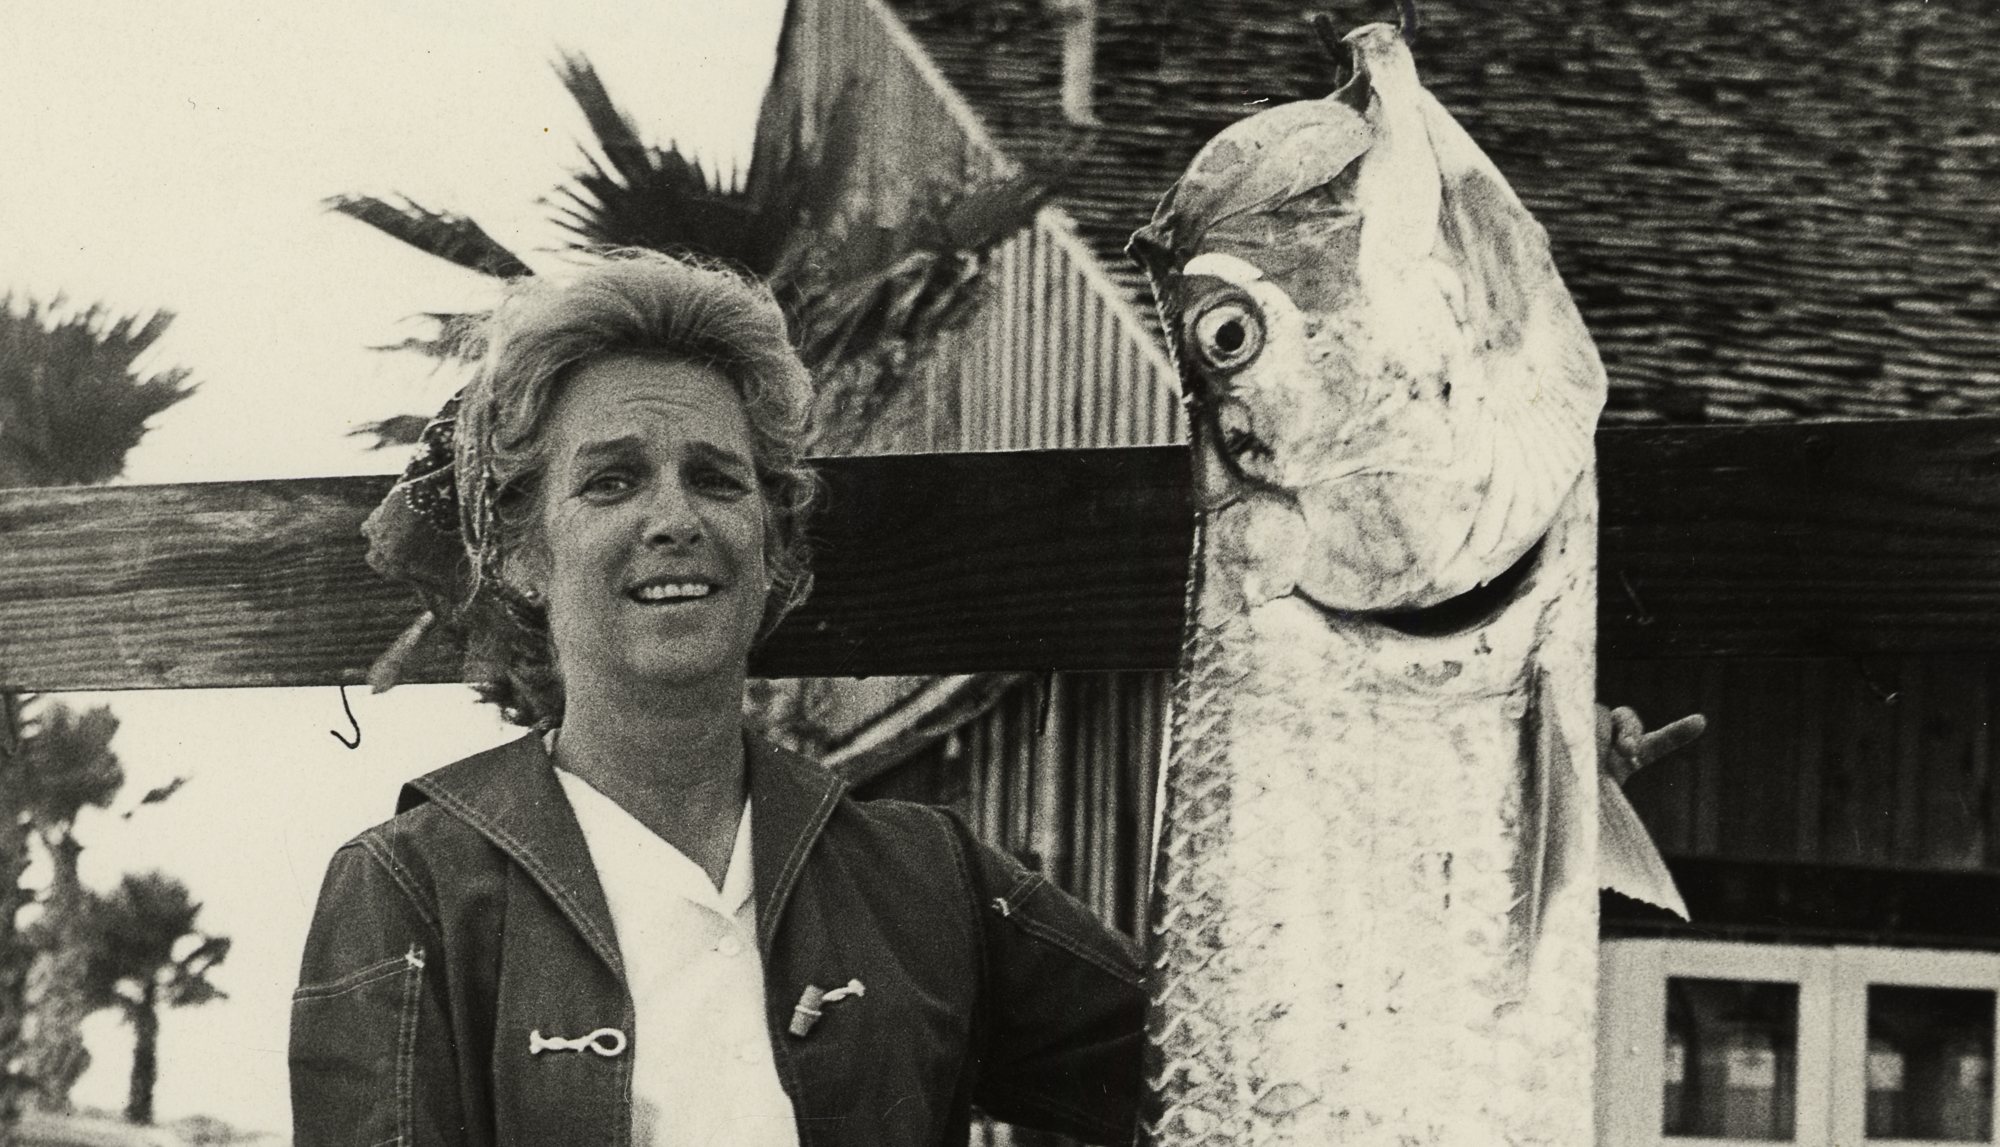 Bobby Wells with her tournament winning Tarpon in 1972. Wells reports that it took an hour and a half to boat the silver king.